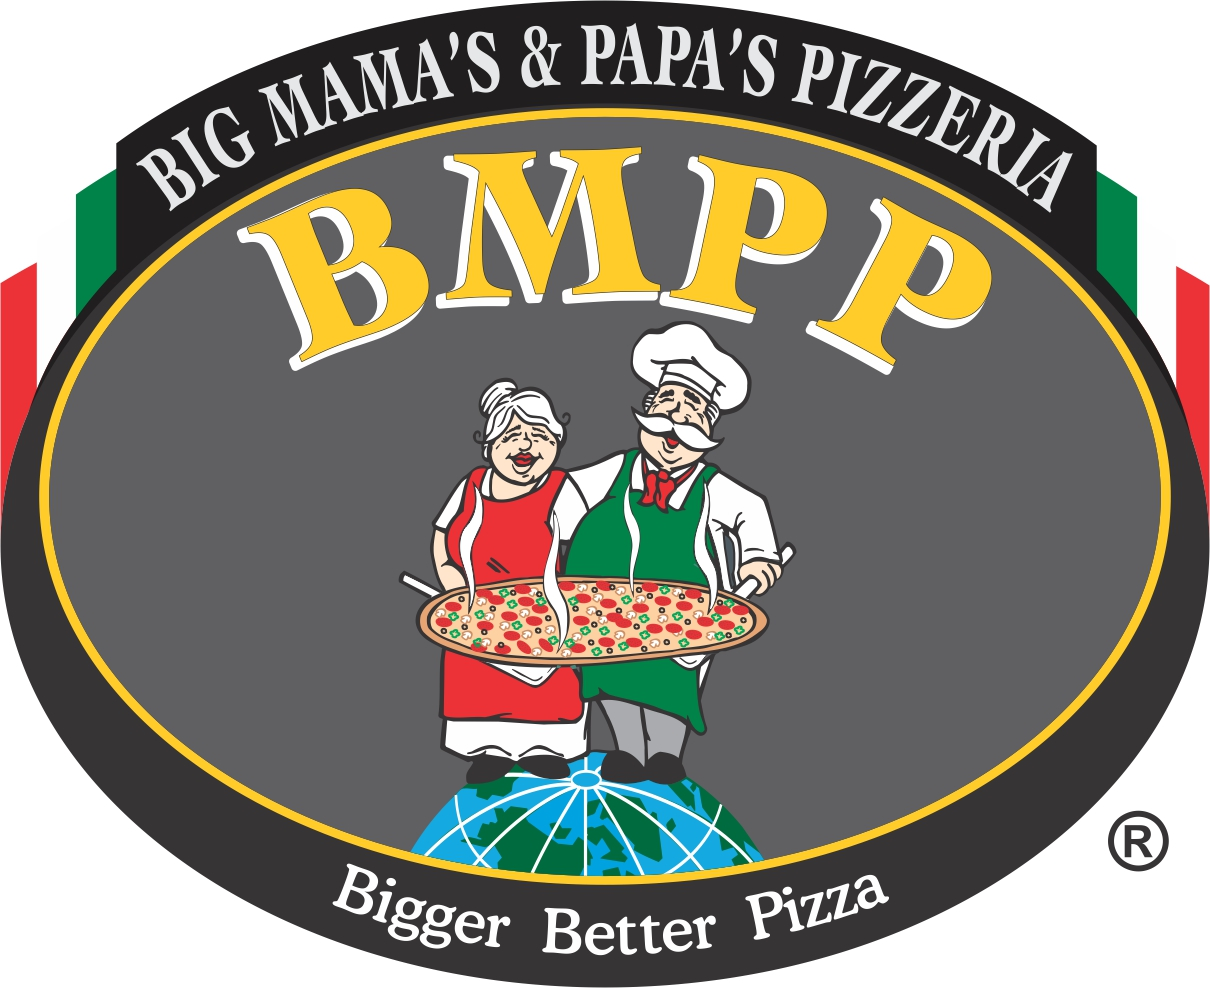 Logo for Big Mama's and Papa's Pizzeria